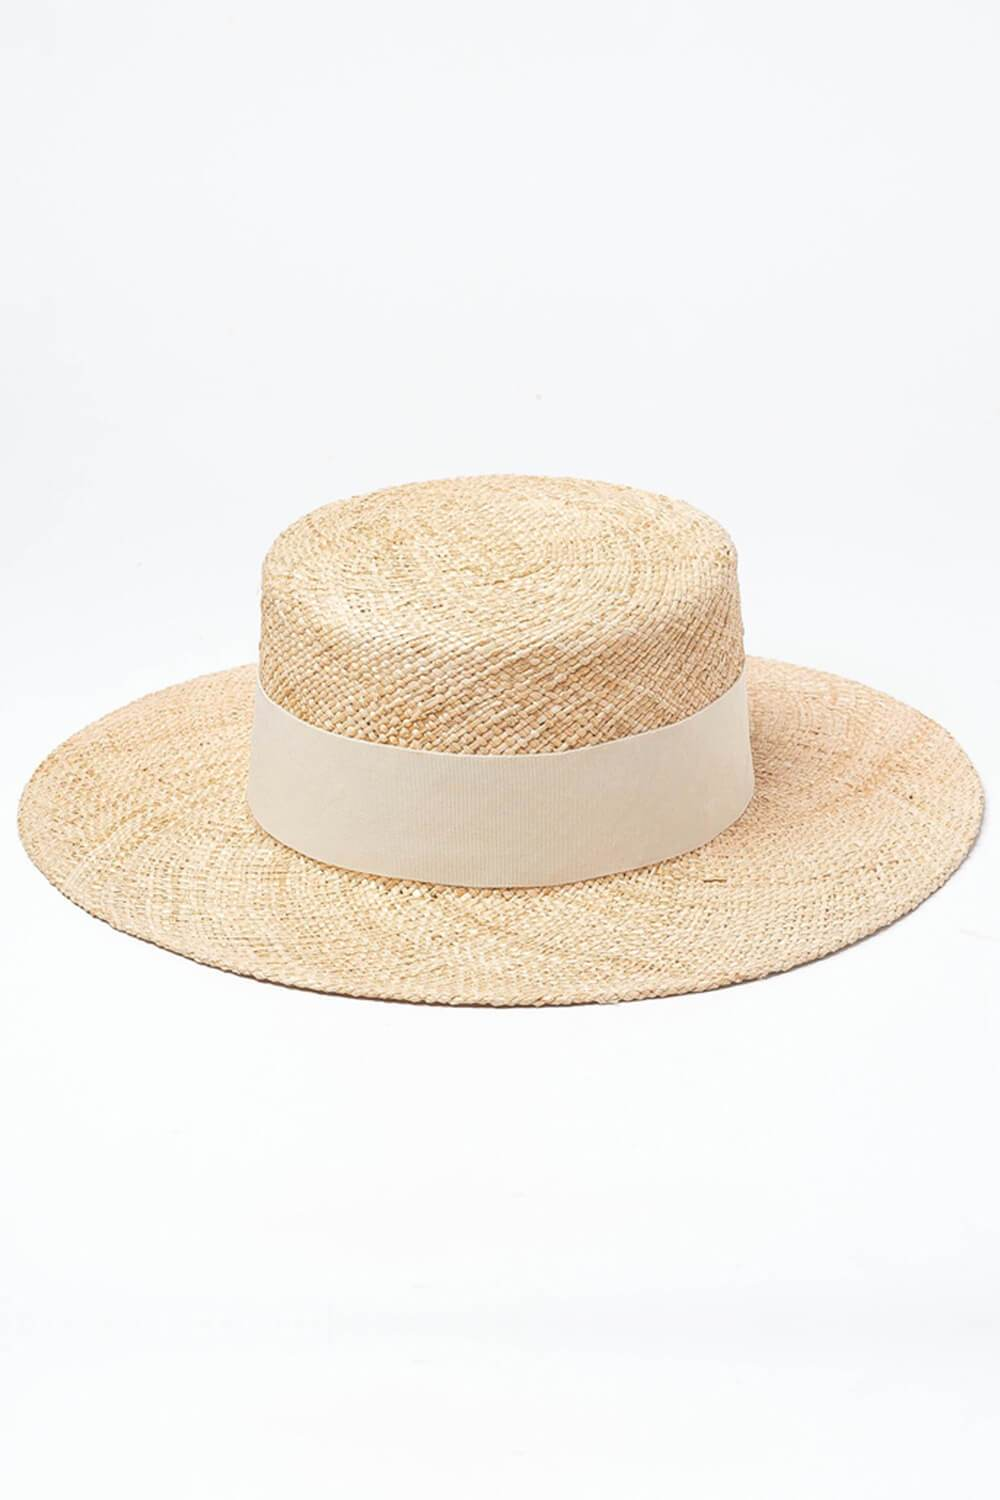 Bao Straw White Ribbon Trimmed Boster